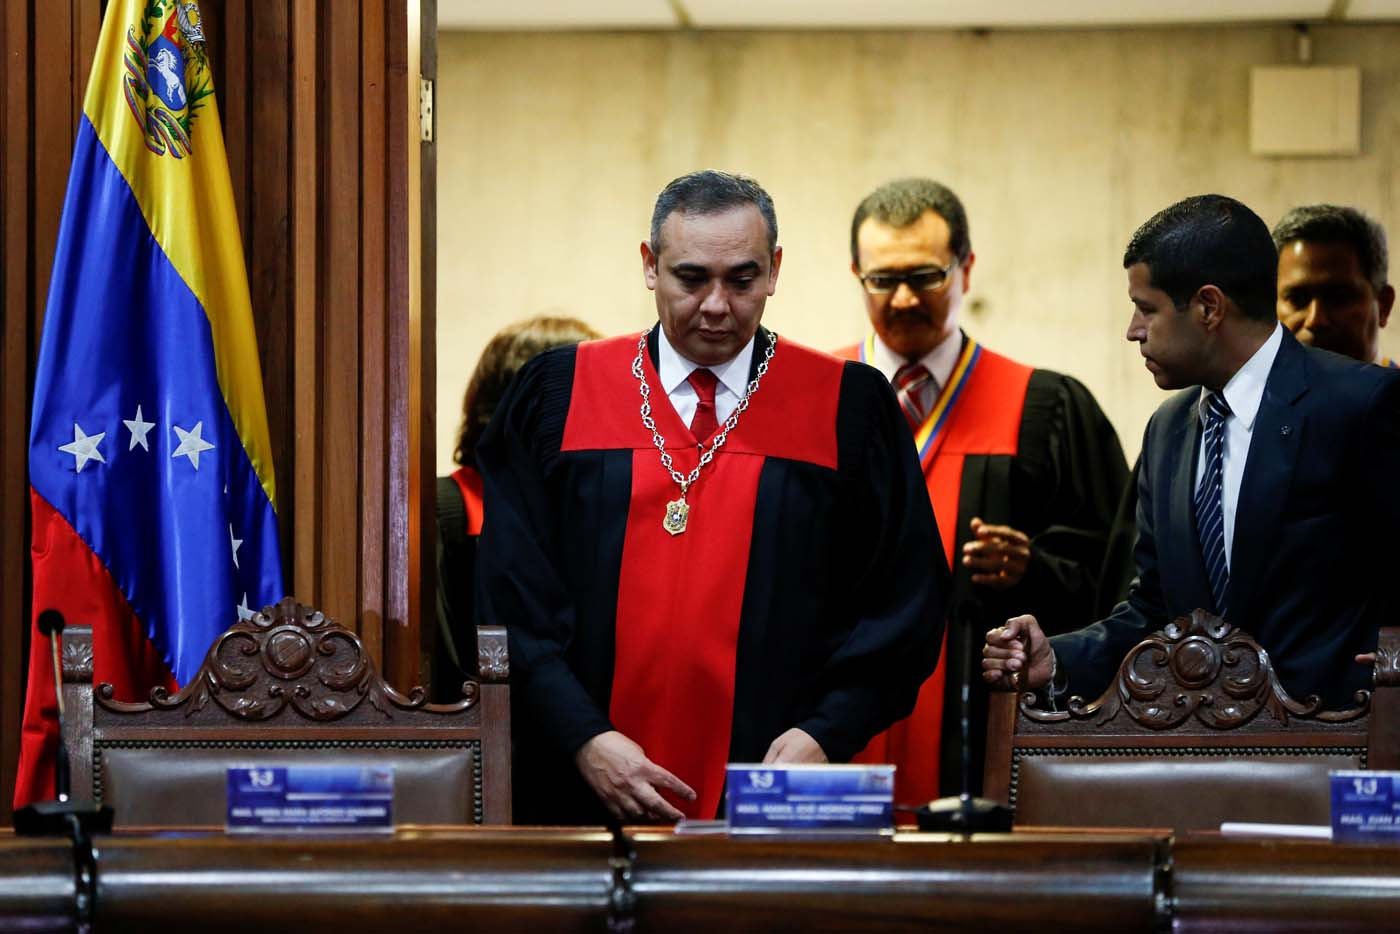 Venezuela's Supreme Court President Maikel Moreno (C), attends to a news conference at the Supreme Court of Justice (TSJ) in Caracas, Venezuela April 1, 2017. REUTERS/Carlos Garcia Rawlins